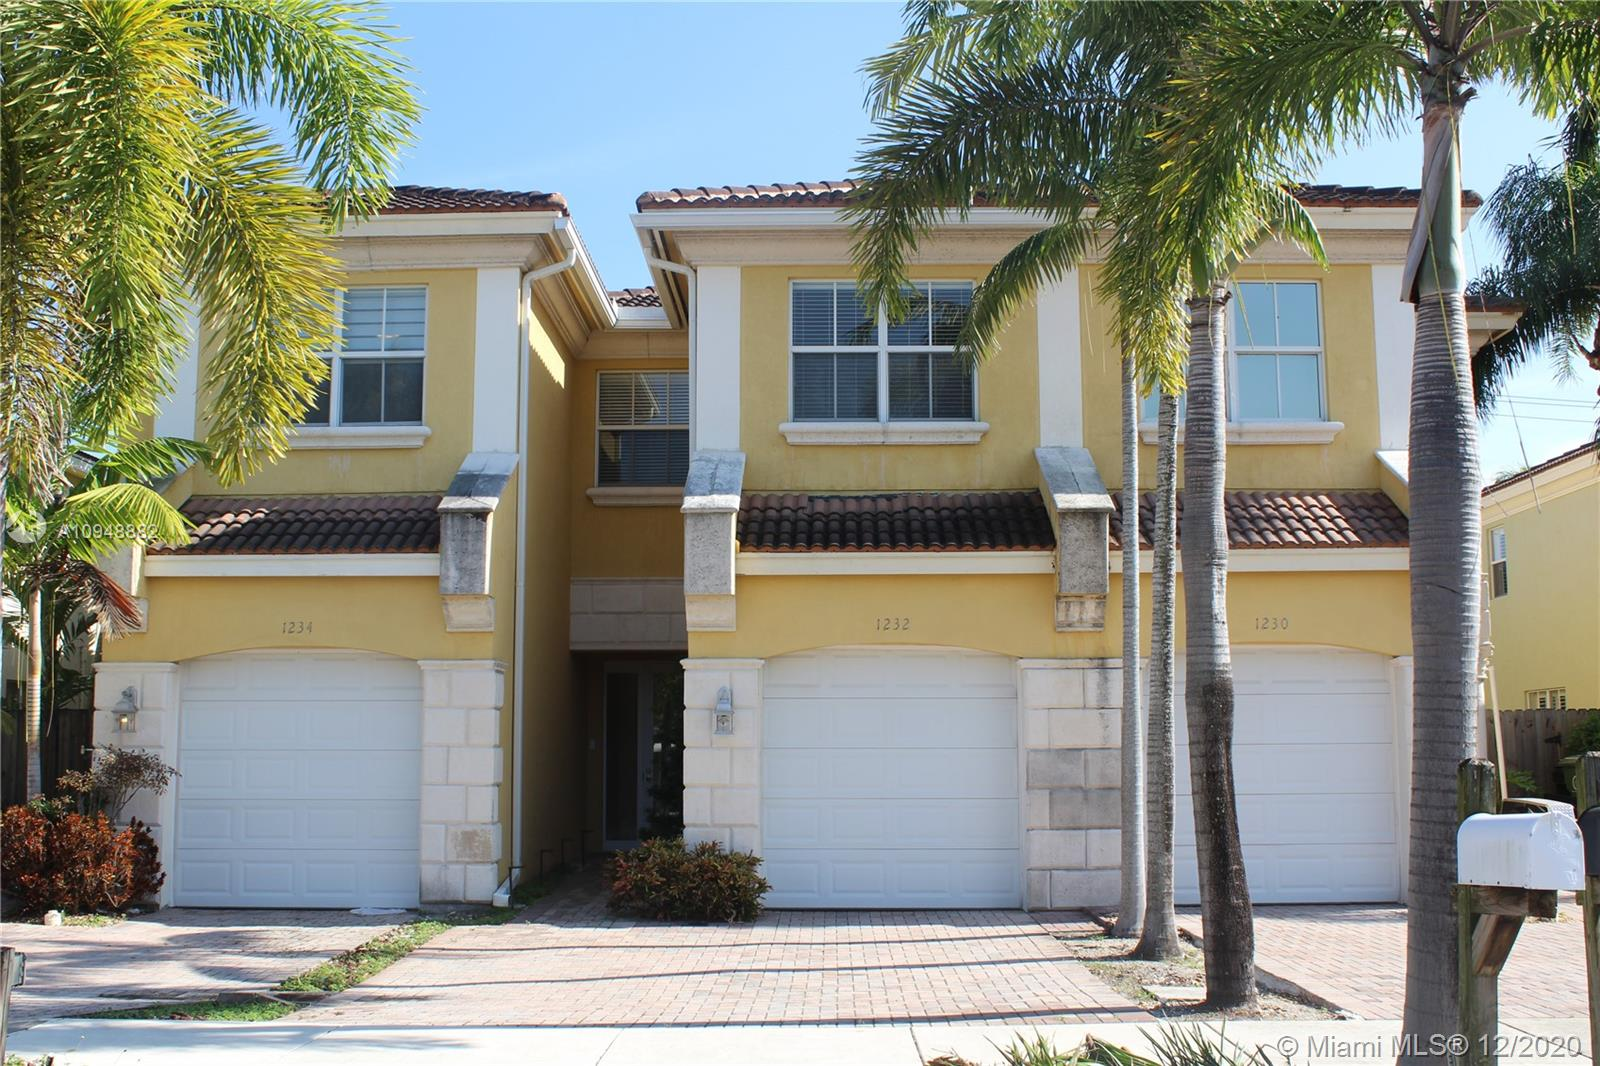 Lake Ridge fee simple 3/2.5 townhome with private pool and 1CG. Minutes from downtown Ft Lauderdale, Wilton Manors, beach and shopping. The home features marble floors throughout living area. Stunning kitchen with granite counters, stainless appliances, and counter seating. Impact windows/doors. Living room overlooks the tropical fenced backyard with HEATED splash pool. The upstairs master bedroom features a walk-in closet and spacious bathroom with dual sinks and separate tub/shower. Pet friendly.